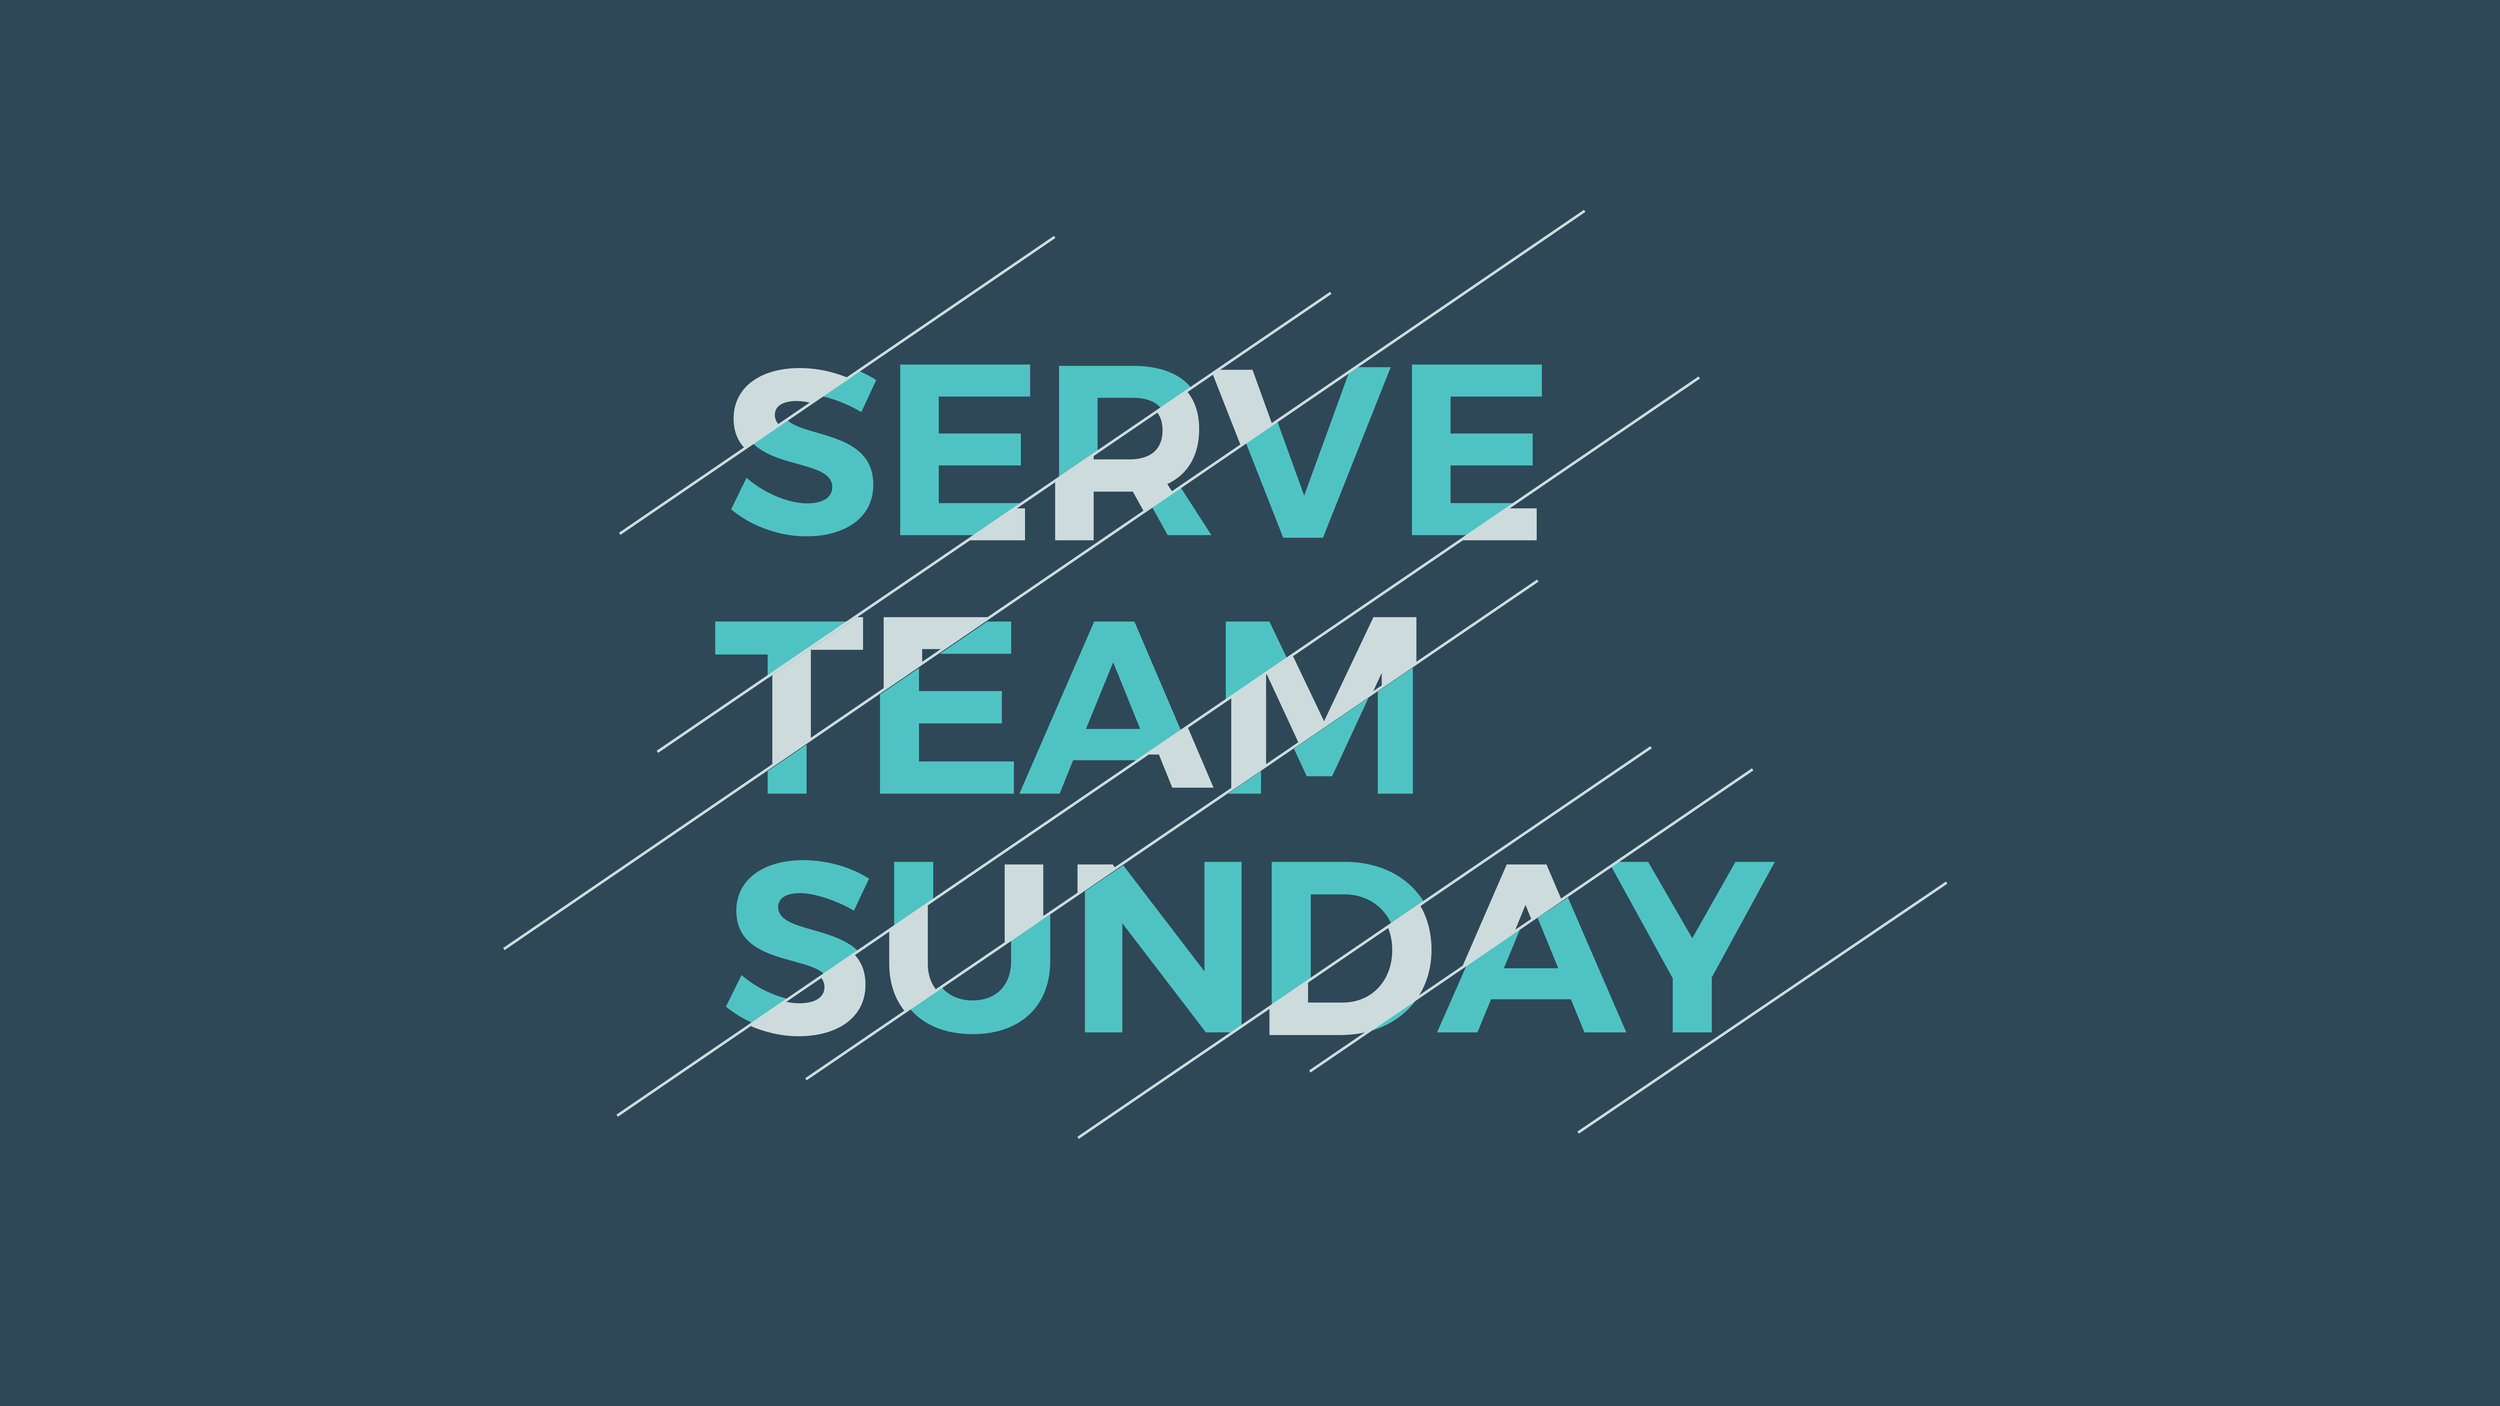 Serve Team Sunday 2019